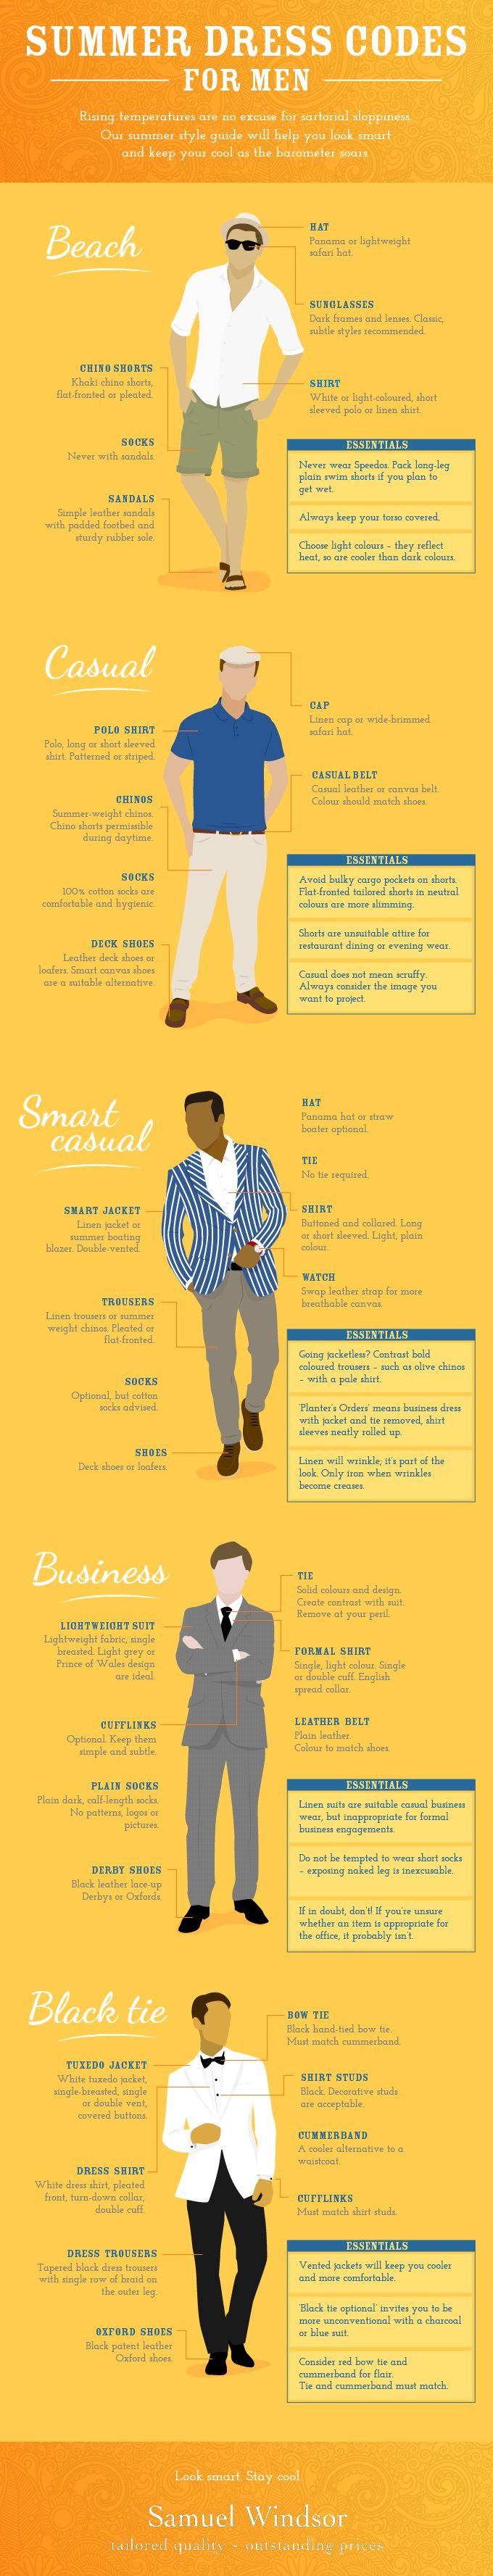 """Does dressing for warm weather leave you hot under the collar? Our visual guide to summer dress codes will ensure you keep your cool."""